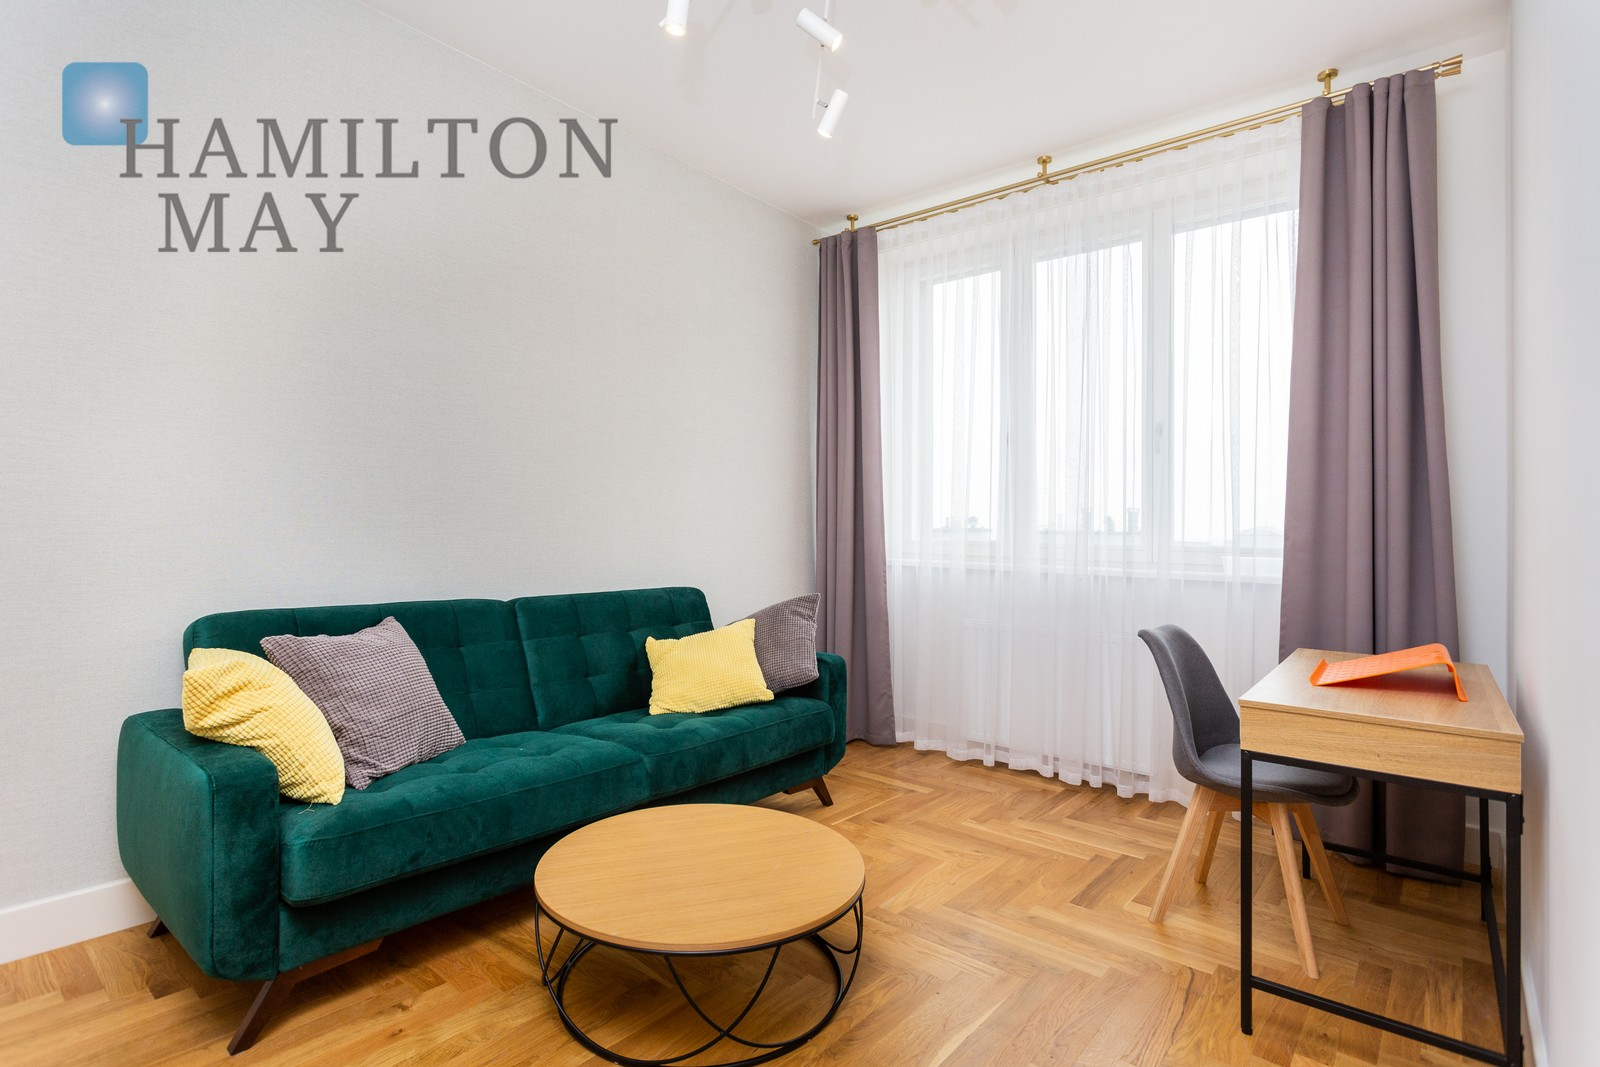 A spacious 2-bedroom apartment with a balcony located in the heart of the Old Town. Krakow for rent